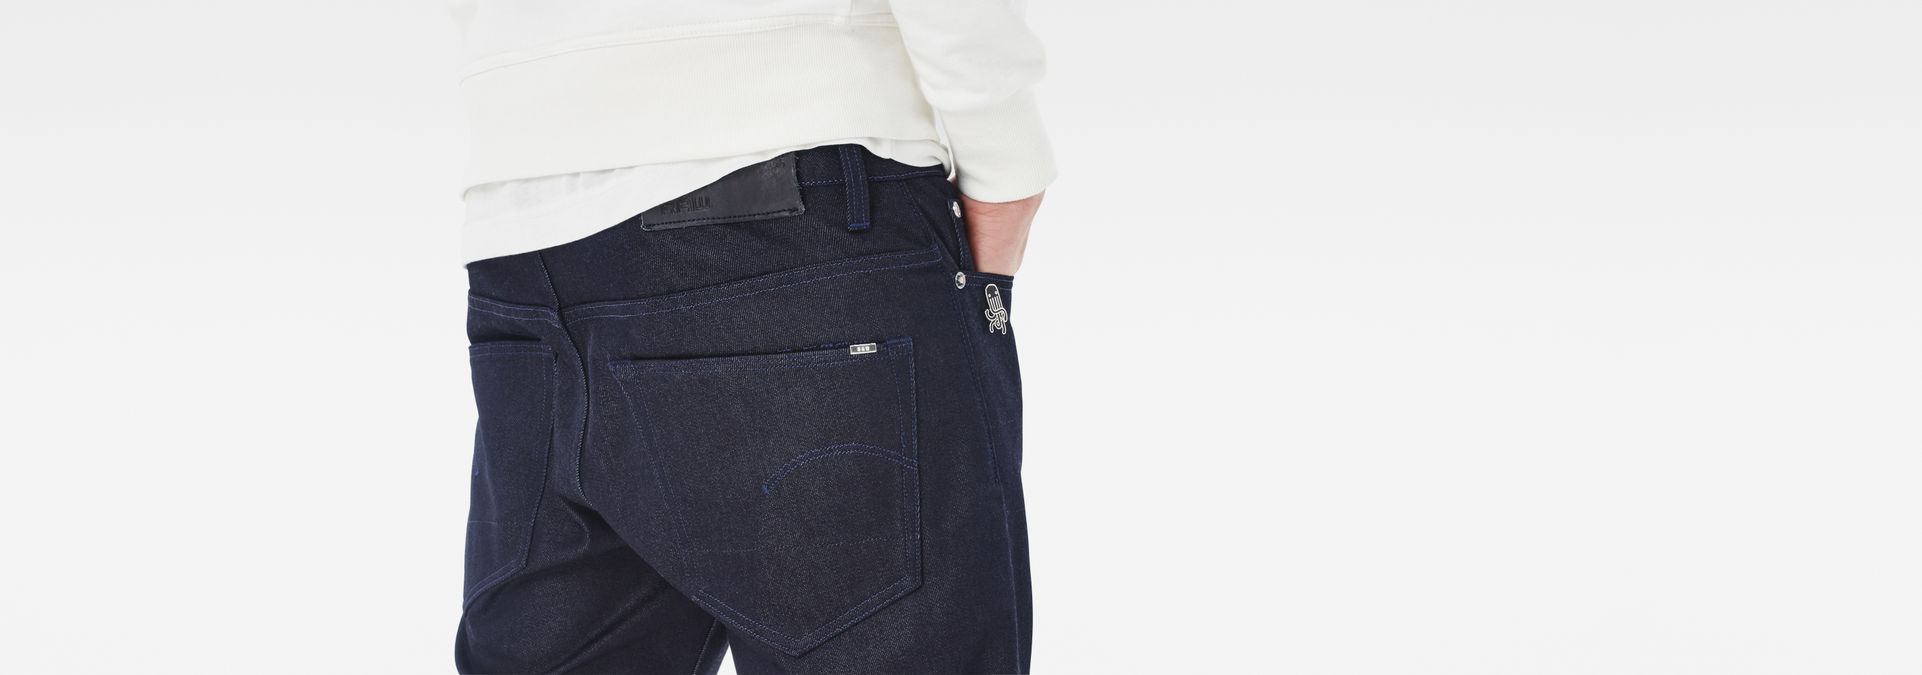 c9a8f6ee7de Occotis 3301 Slim Jeans | Raw Denim | Men | G-Star RAW®